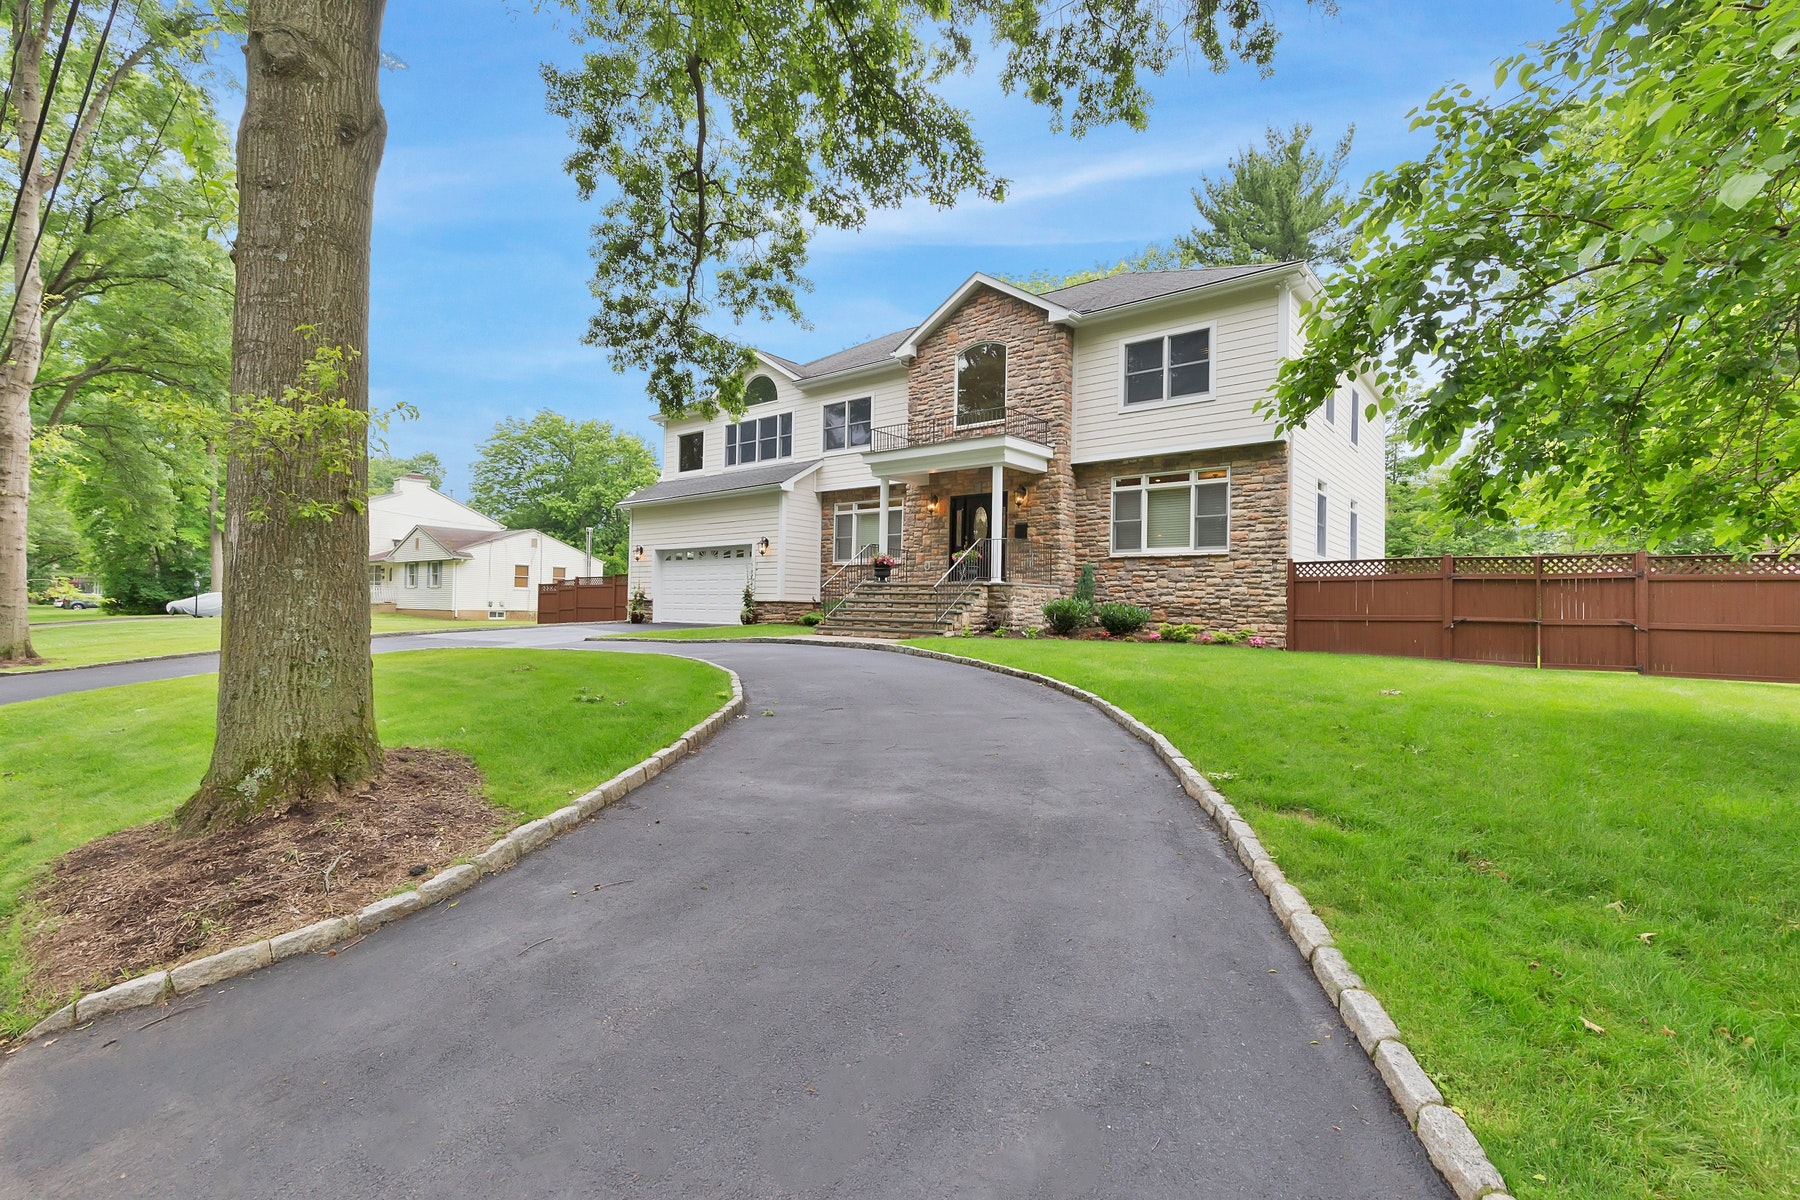 Single Family Homes for Sale at Live Grand on Redwood Road Scotch Plains 2269 Redwood Road Scotch Plains, New Jersey 07076 United States